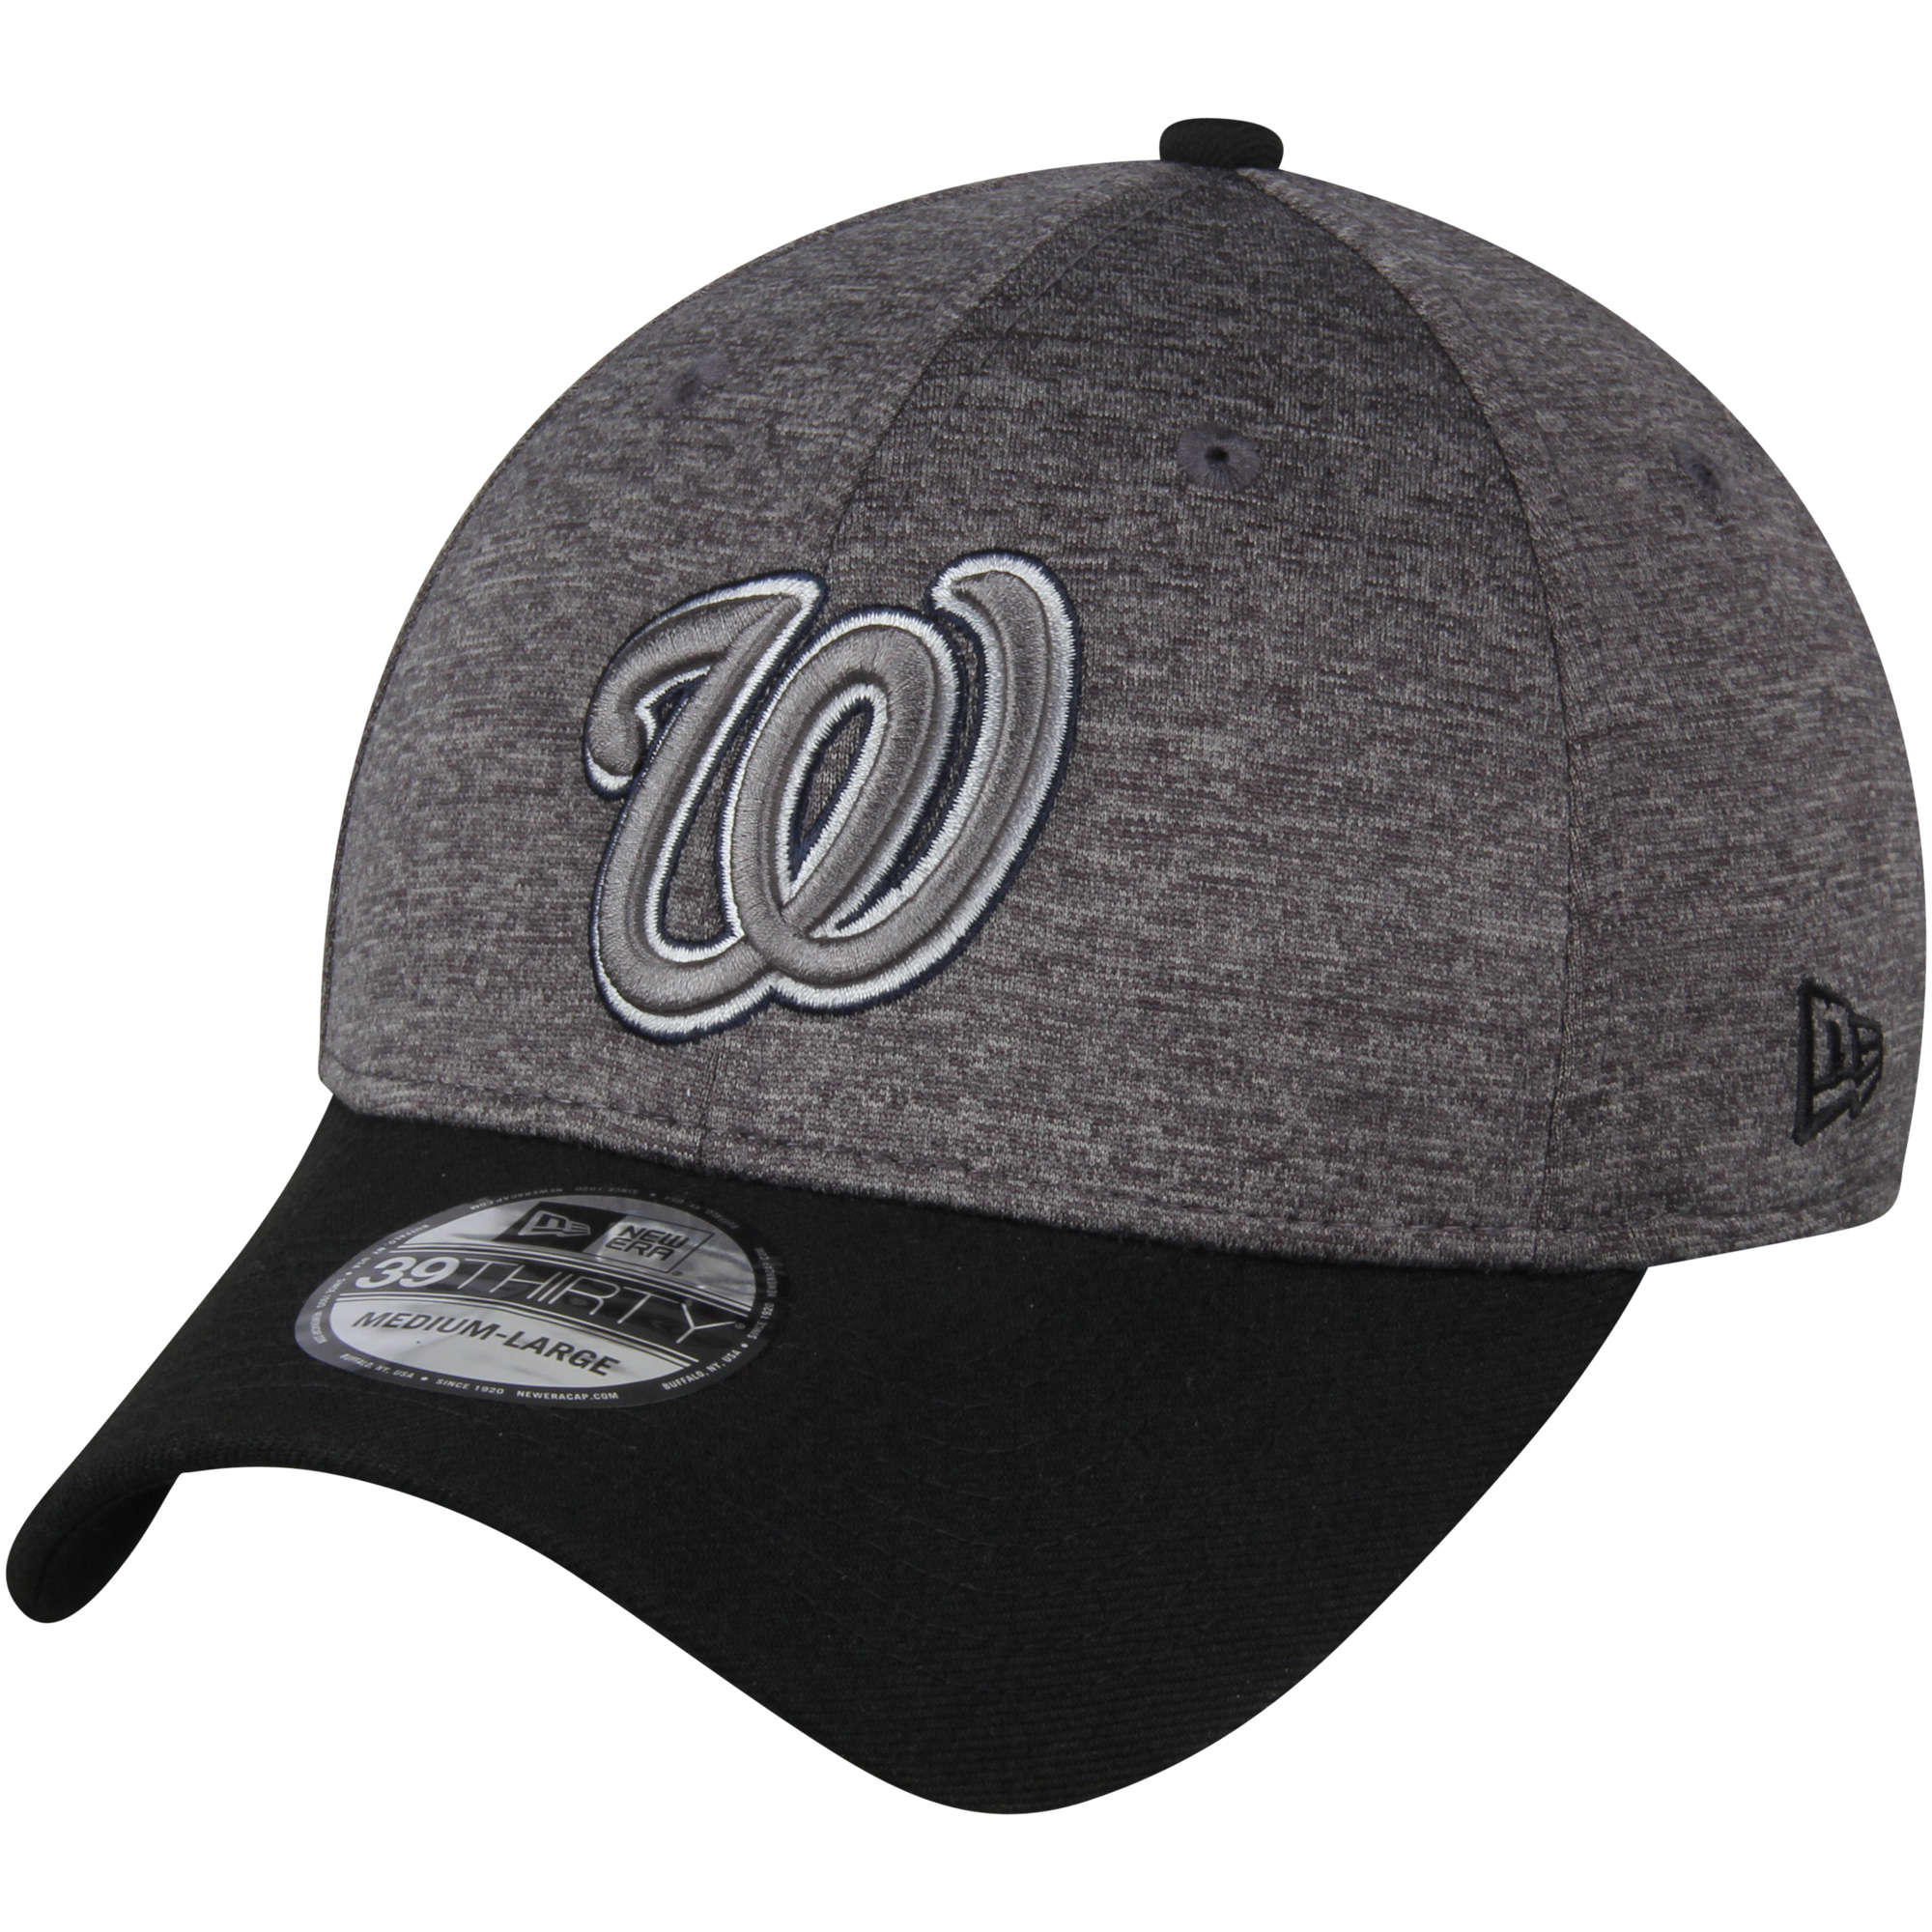 Washington Nationals New Era 39THIRTY Shadow Tech Color Pop Flex Hat - Heathered Gray/Black